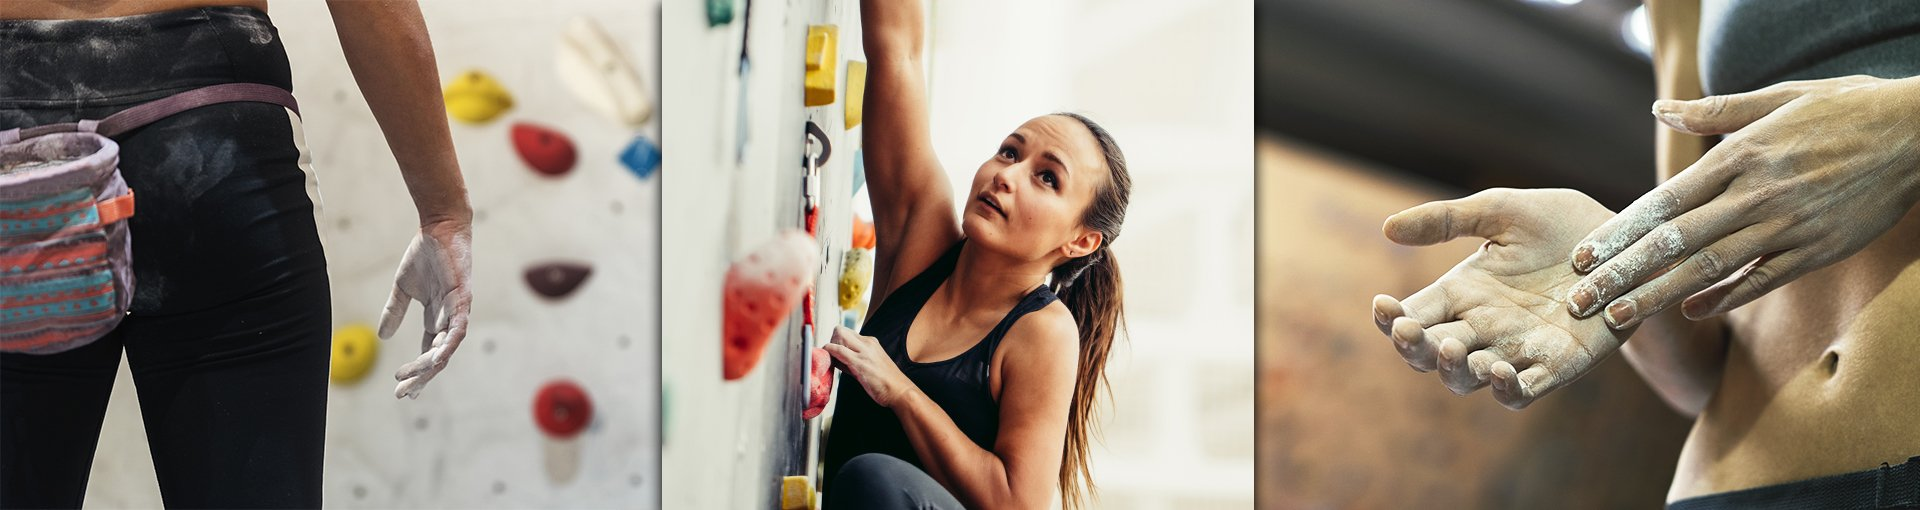 Top 10 Hand and Forearm Exercises for Rock Climbers